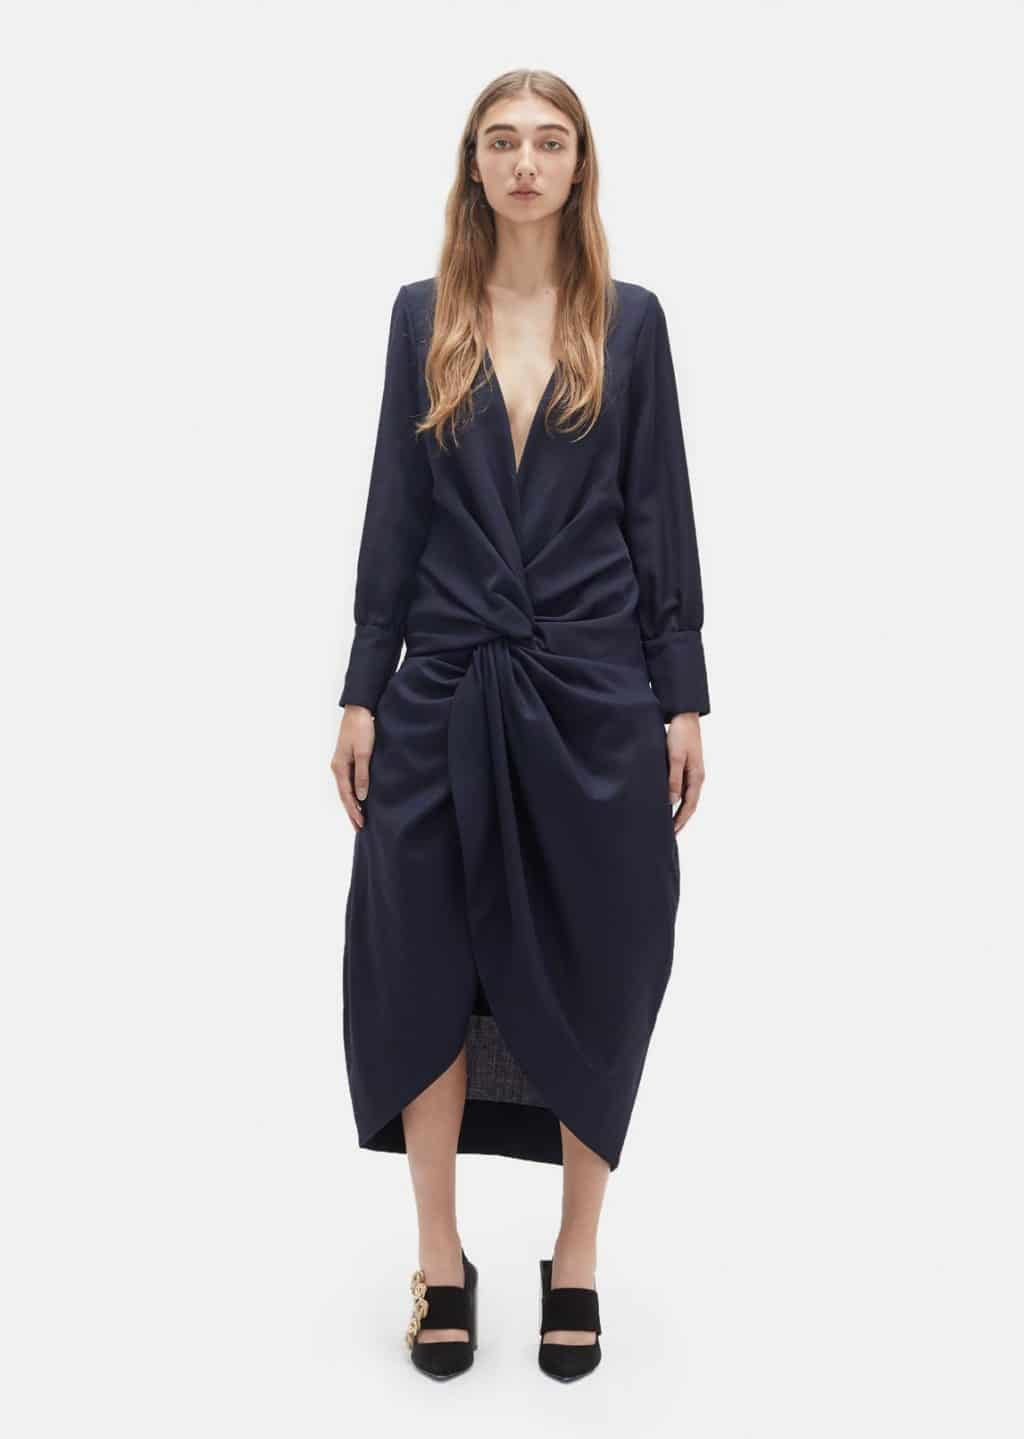 2f416bdc2cc7 JACQUEMUS Flower Wool Navy Dress - We Select Dresses